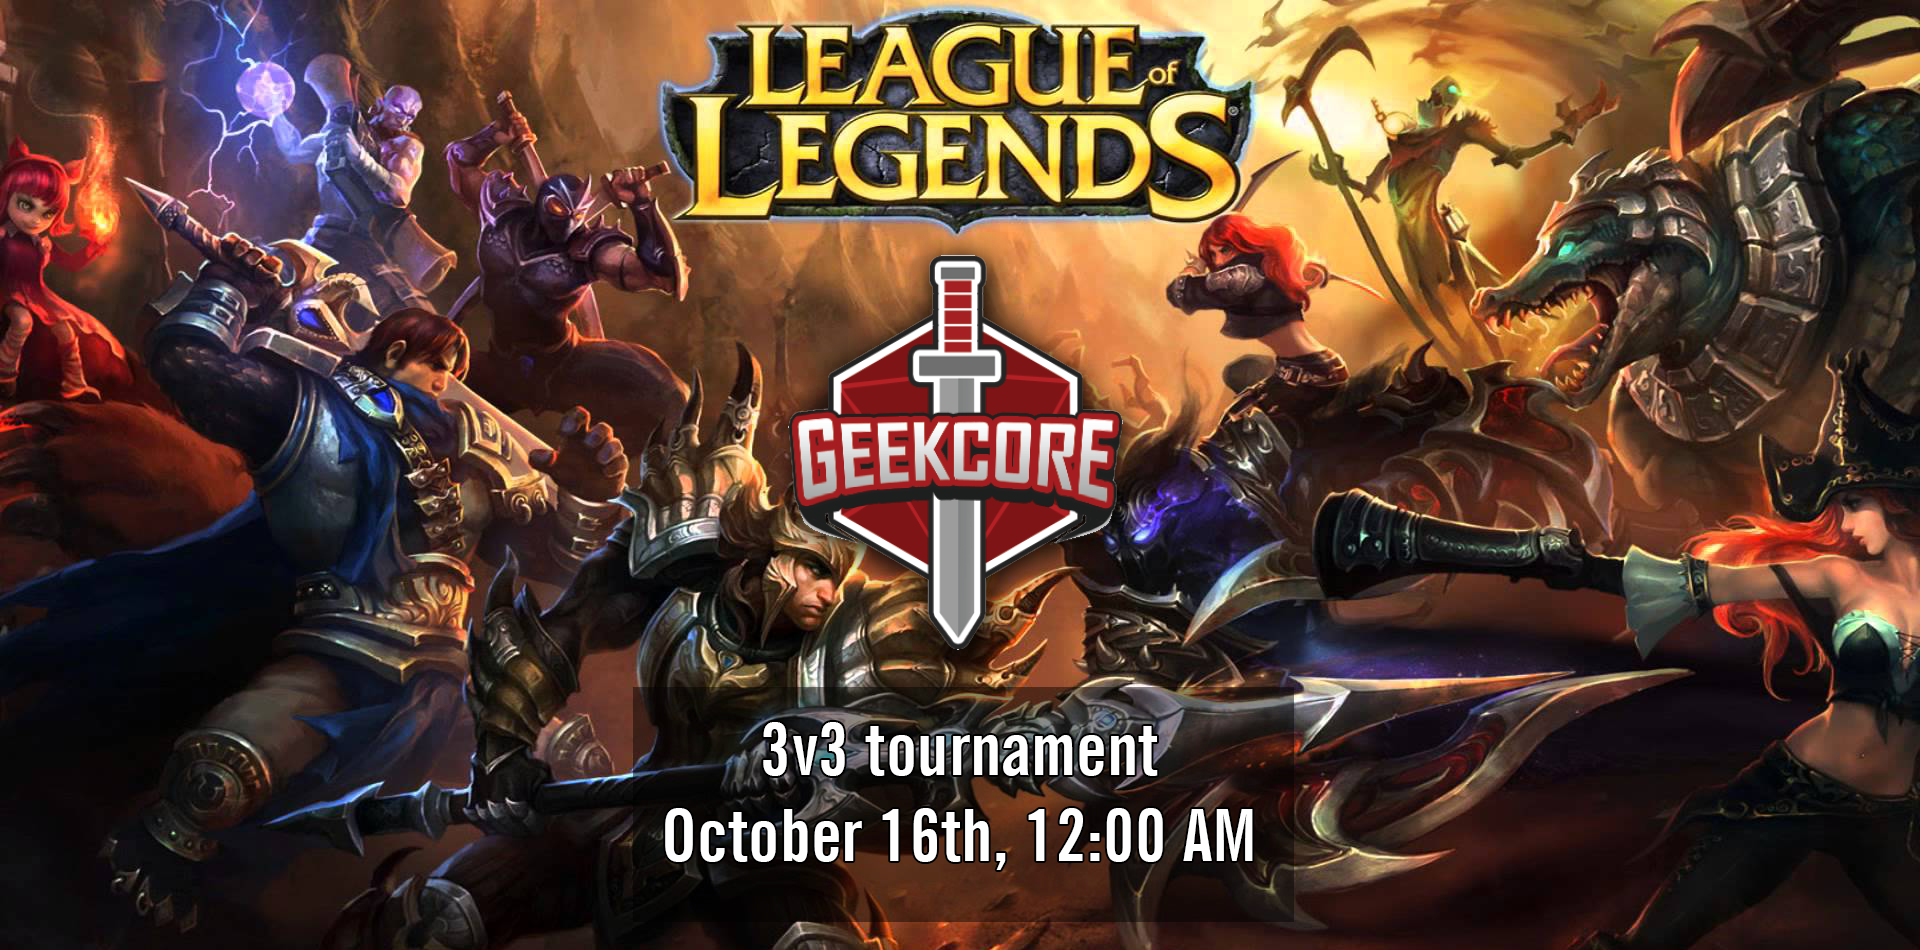 geekcore 3v3 league of legends tournament by geekcore